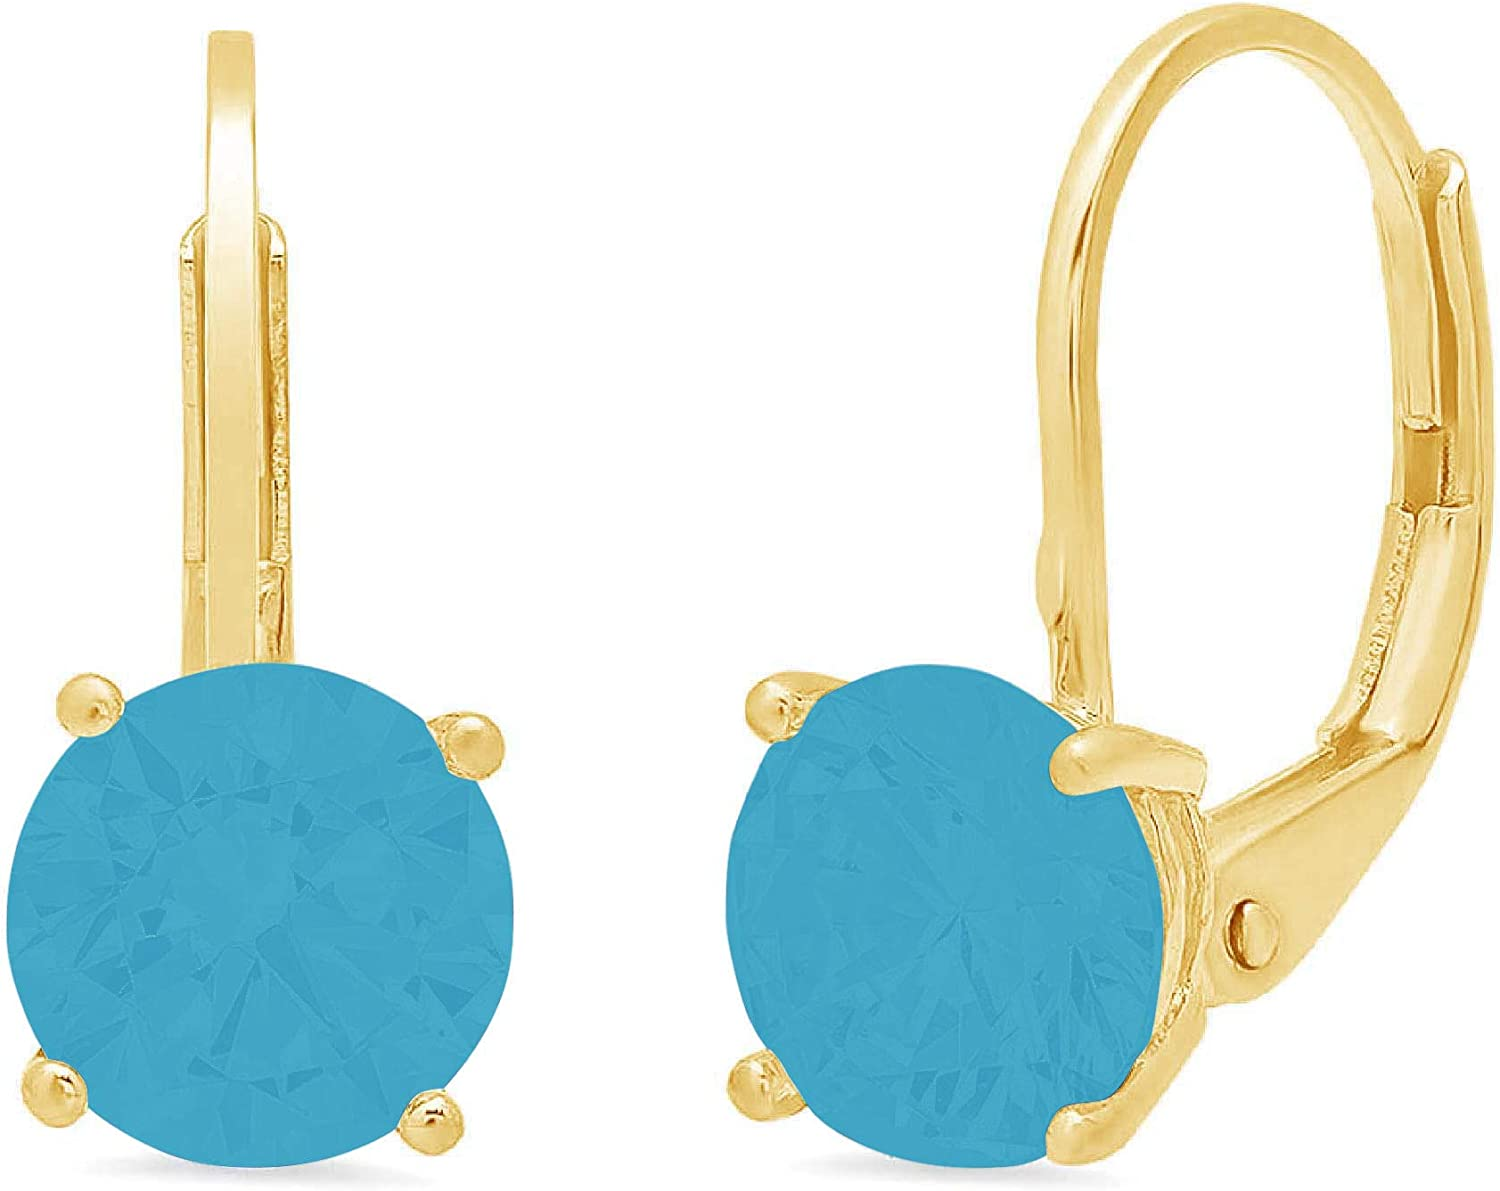 Clara Pucci 3.0 ct Brilliant Round Cut Solitaire VVS1 Flawless Simulated Turquoise Gemstone Pair of Lever back Drop Dangle Earrings Solid 18K Yellow Gold